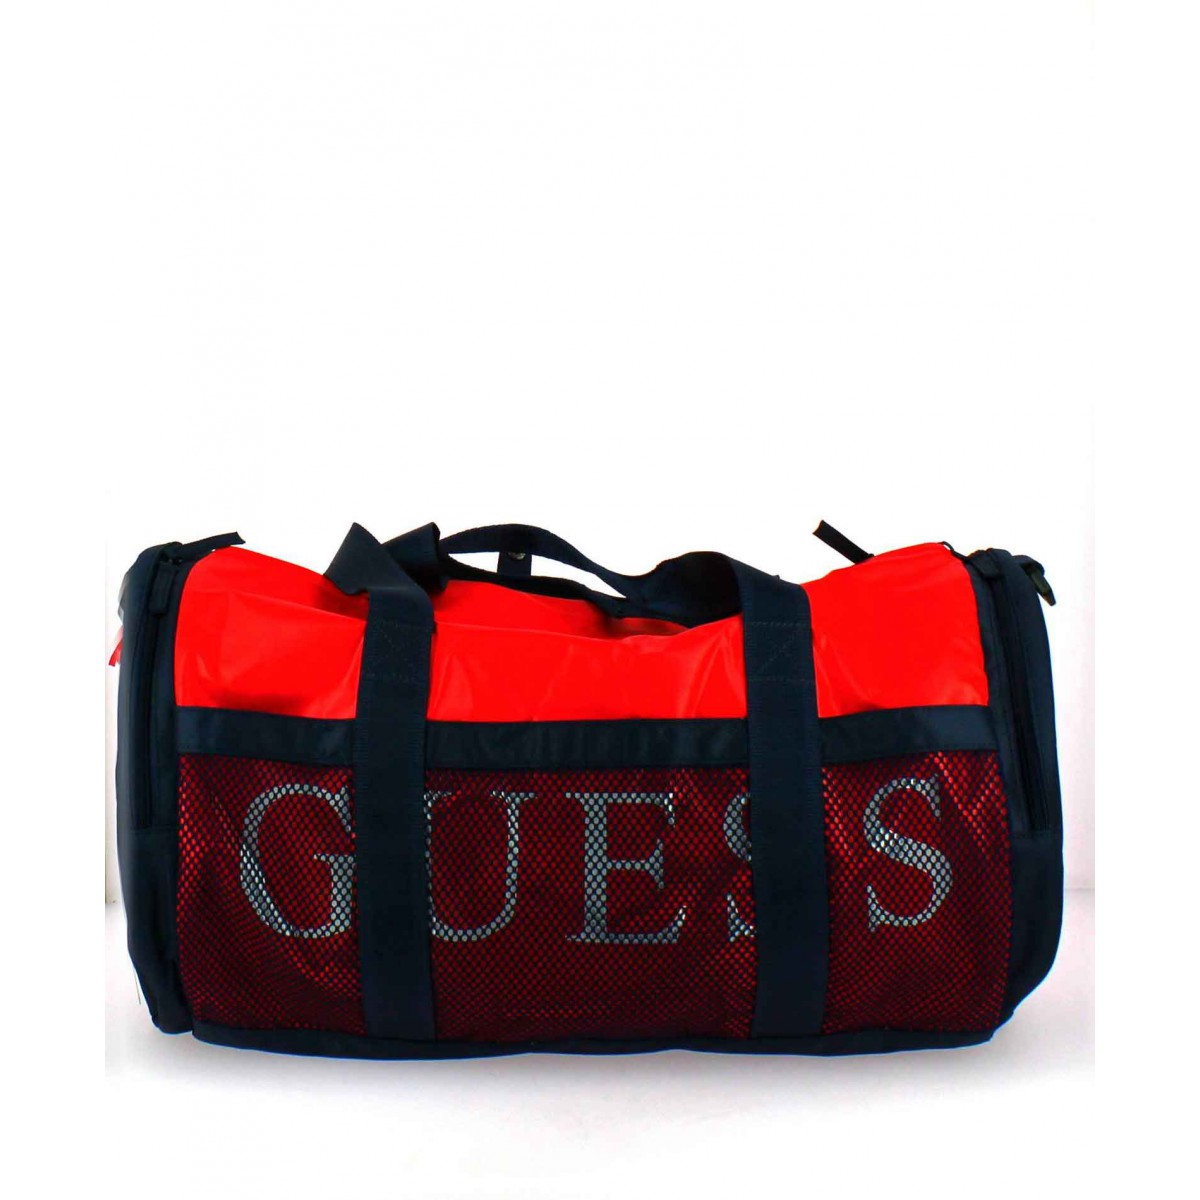 sac de plage sac de sport guess. Black Bedroom Furniture Sets. Home Design Ideas